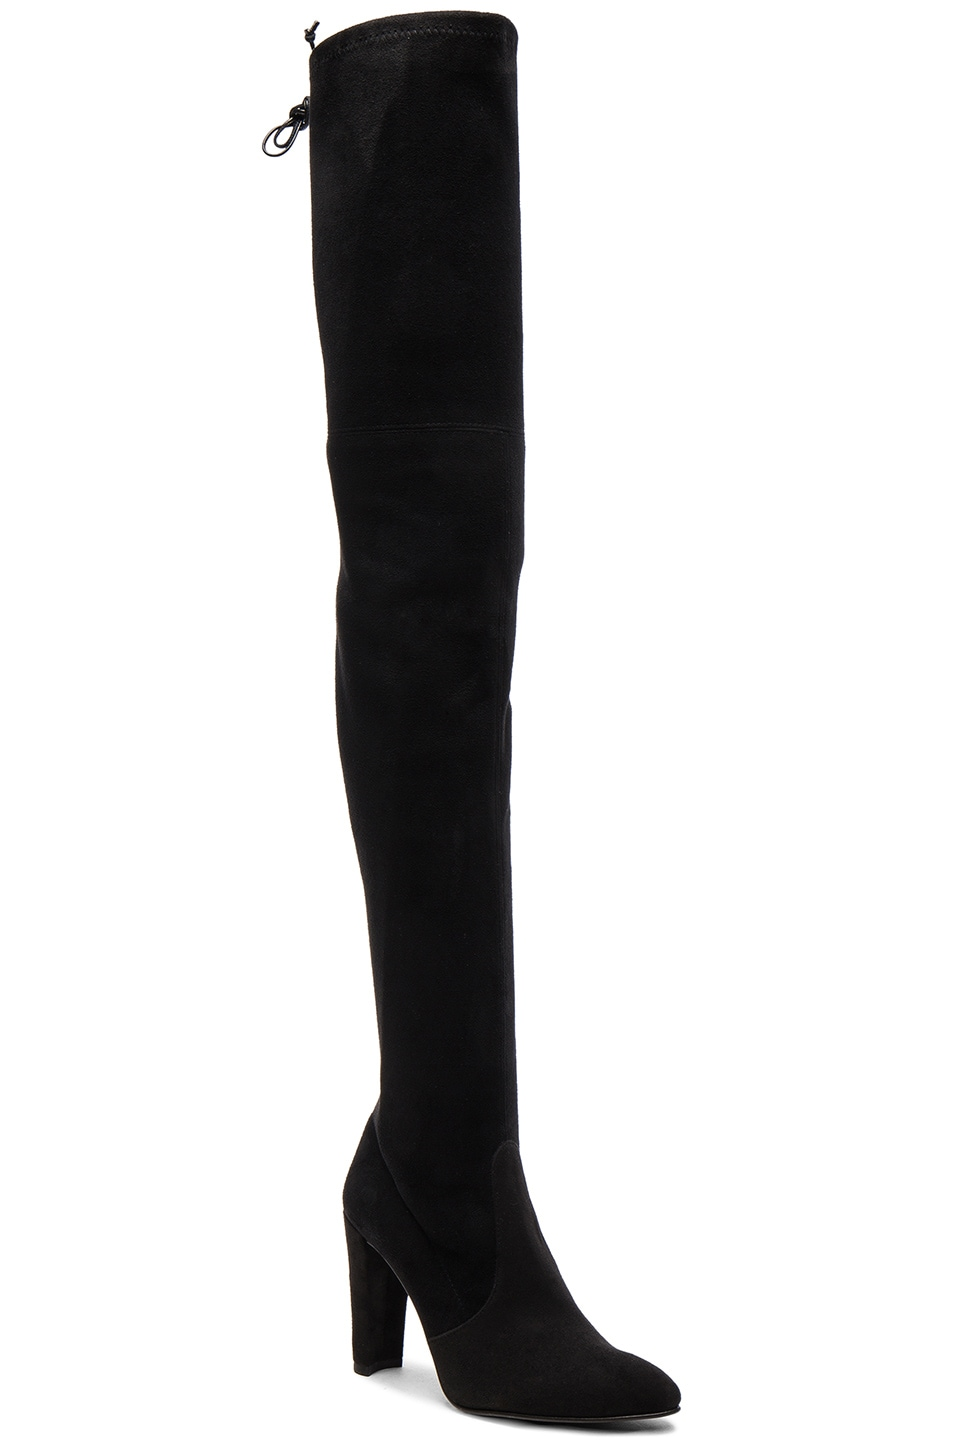 Image 2 of Stuart Weitzman Suede Alllegs Boots in Black